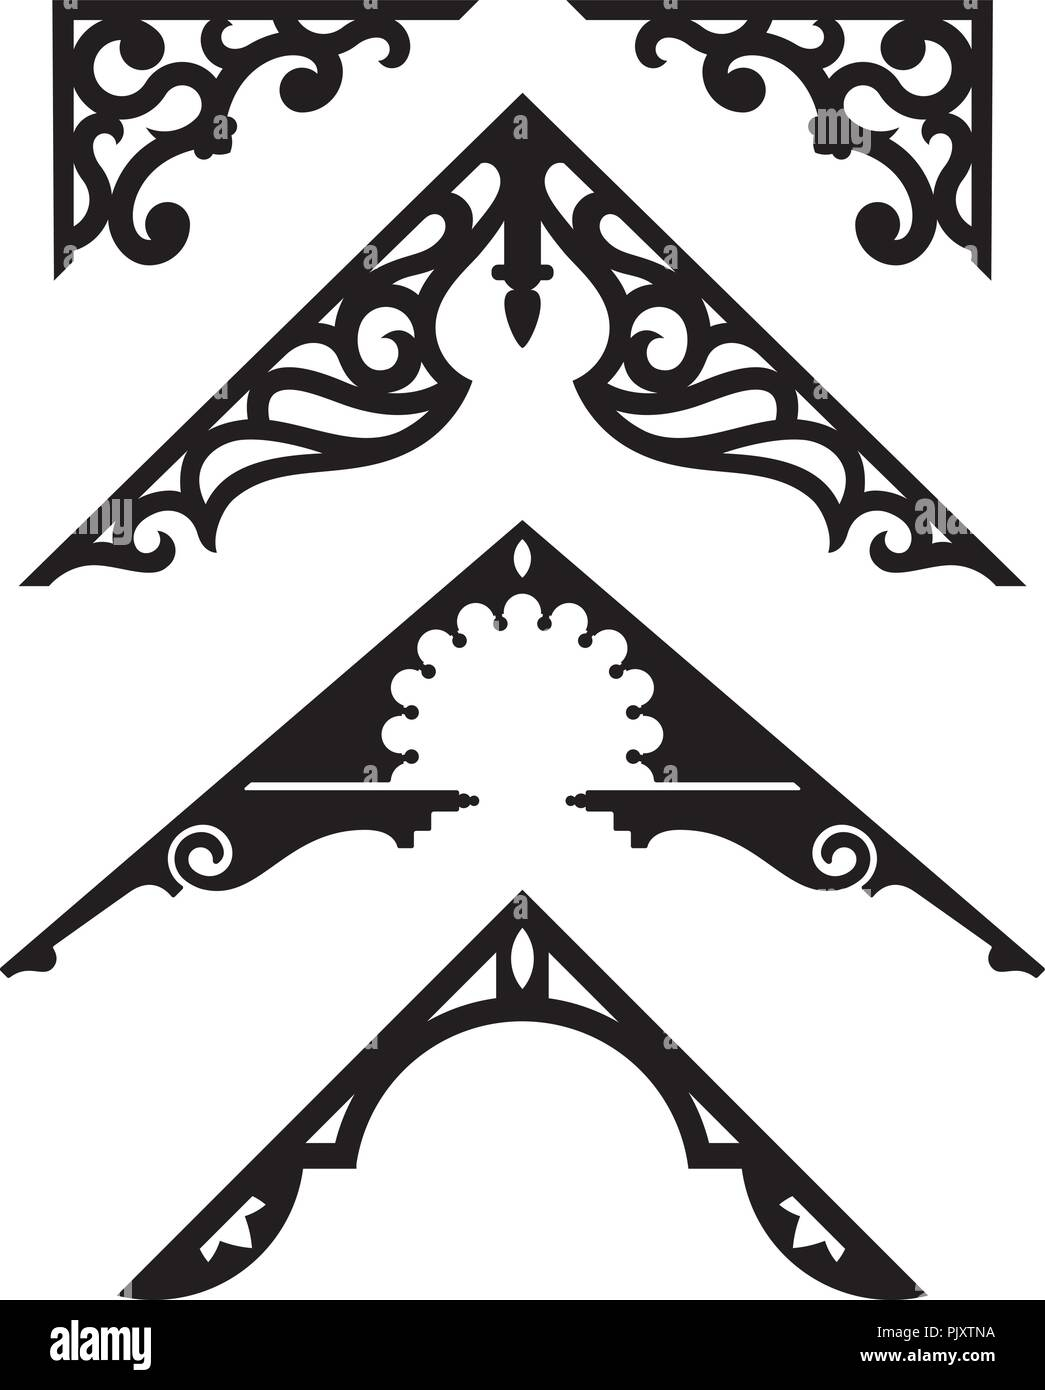 Set of Victorian Gingerbread Architectural Trim Illustrations. Silhouette vector illustrations of vintage design details from classic Victorian houses - Stock Vector